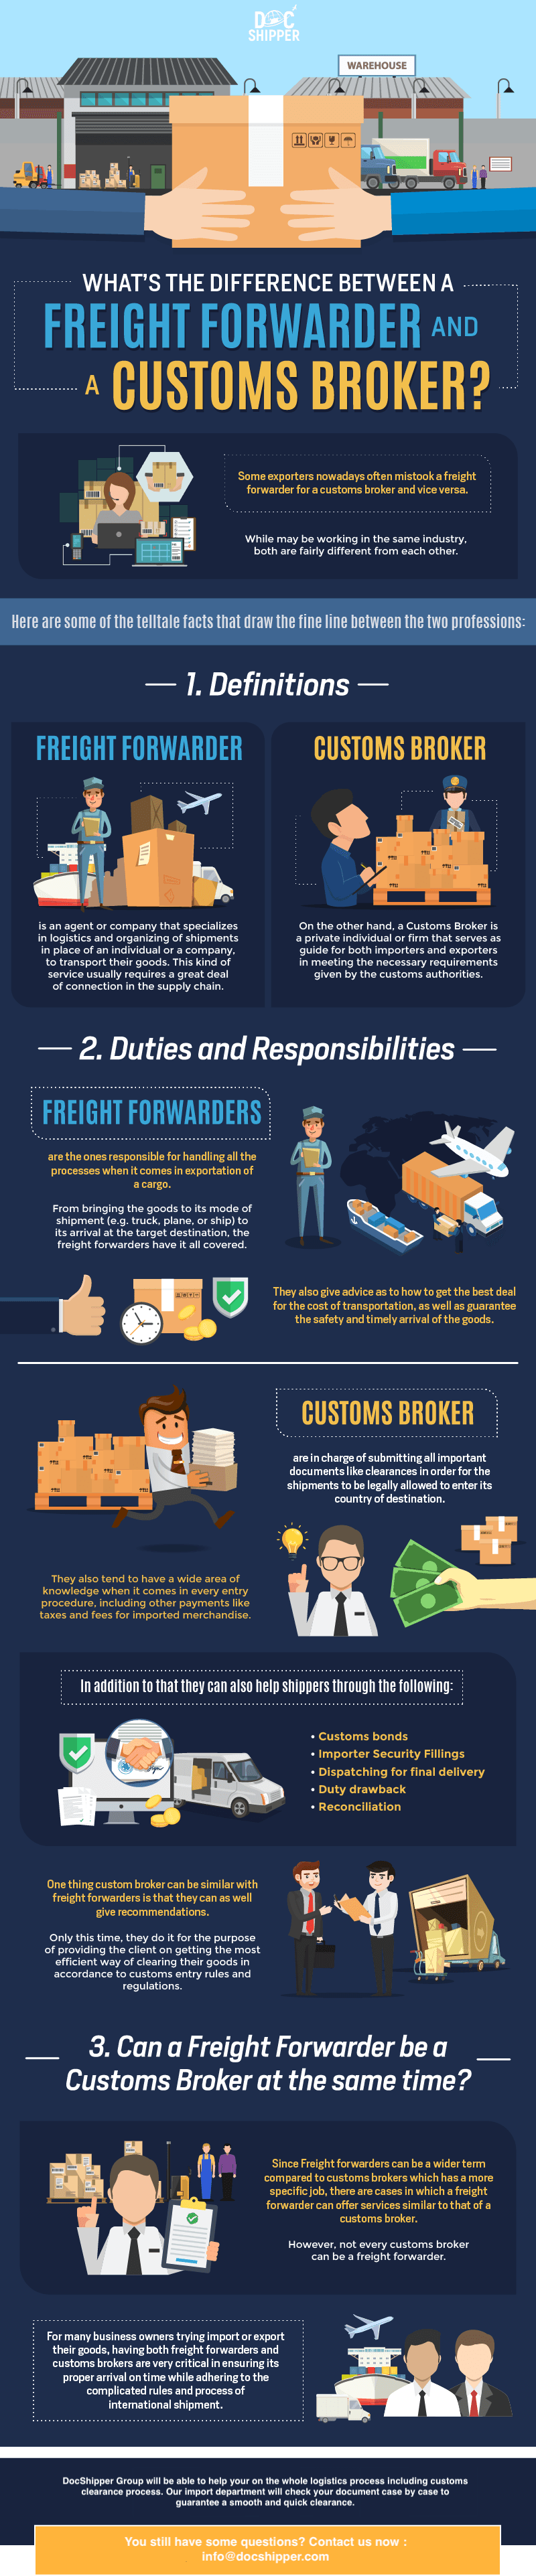 Difference-Between-a-Freight-Forwarder-and-a-Customs-Broker